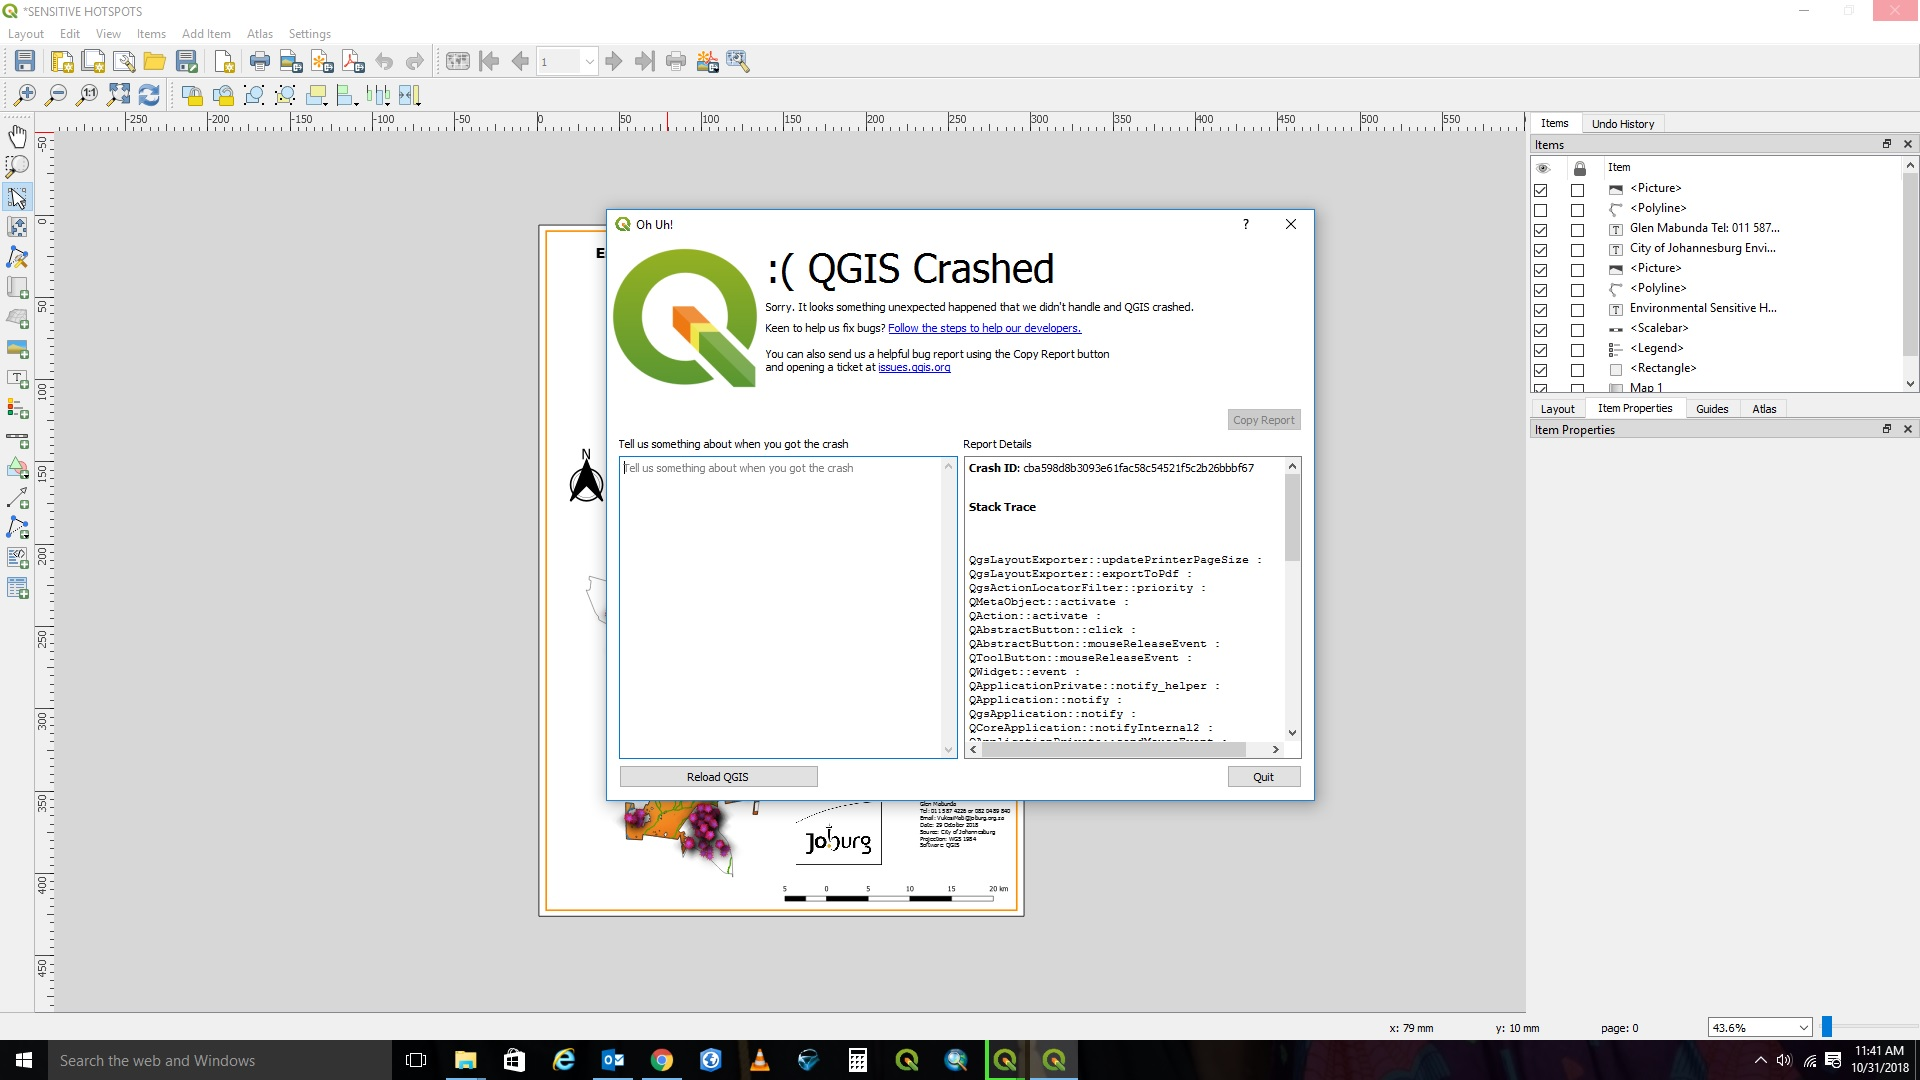 Bug report #20294: QGIS crashes when exporting a layout to pdf (and